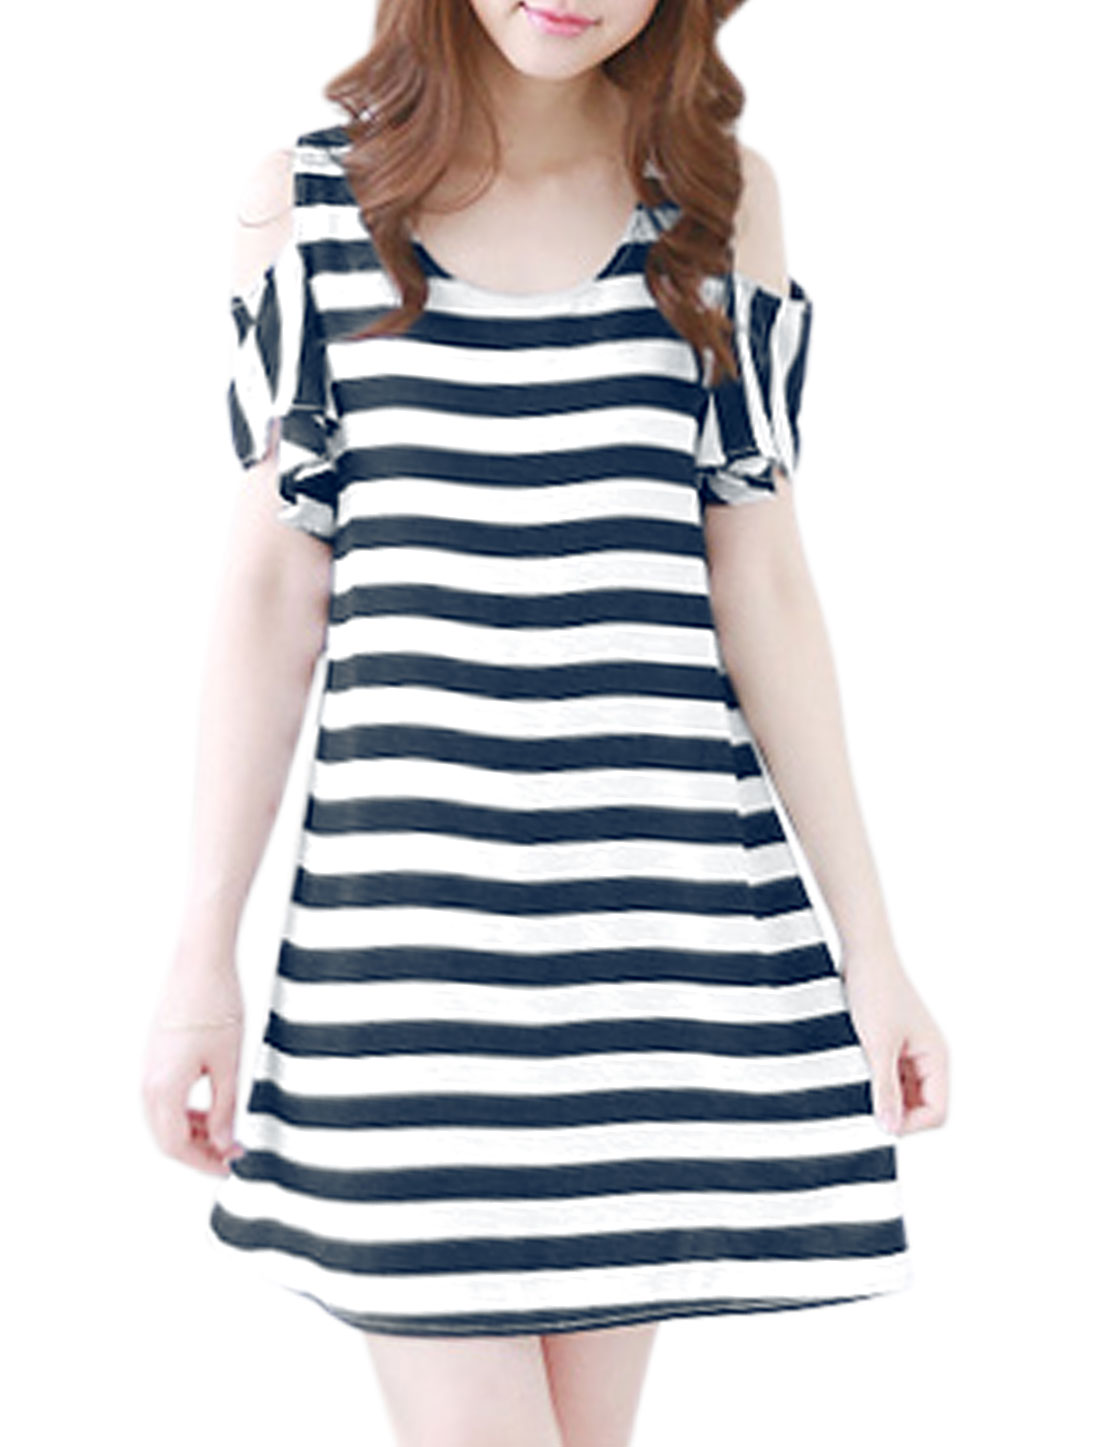 Women Stripes Cut Out Shoulder Flounce Sleeves A Line Dress Navy Blue White S